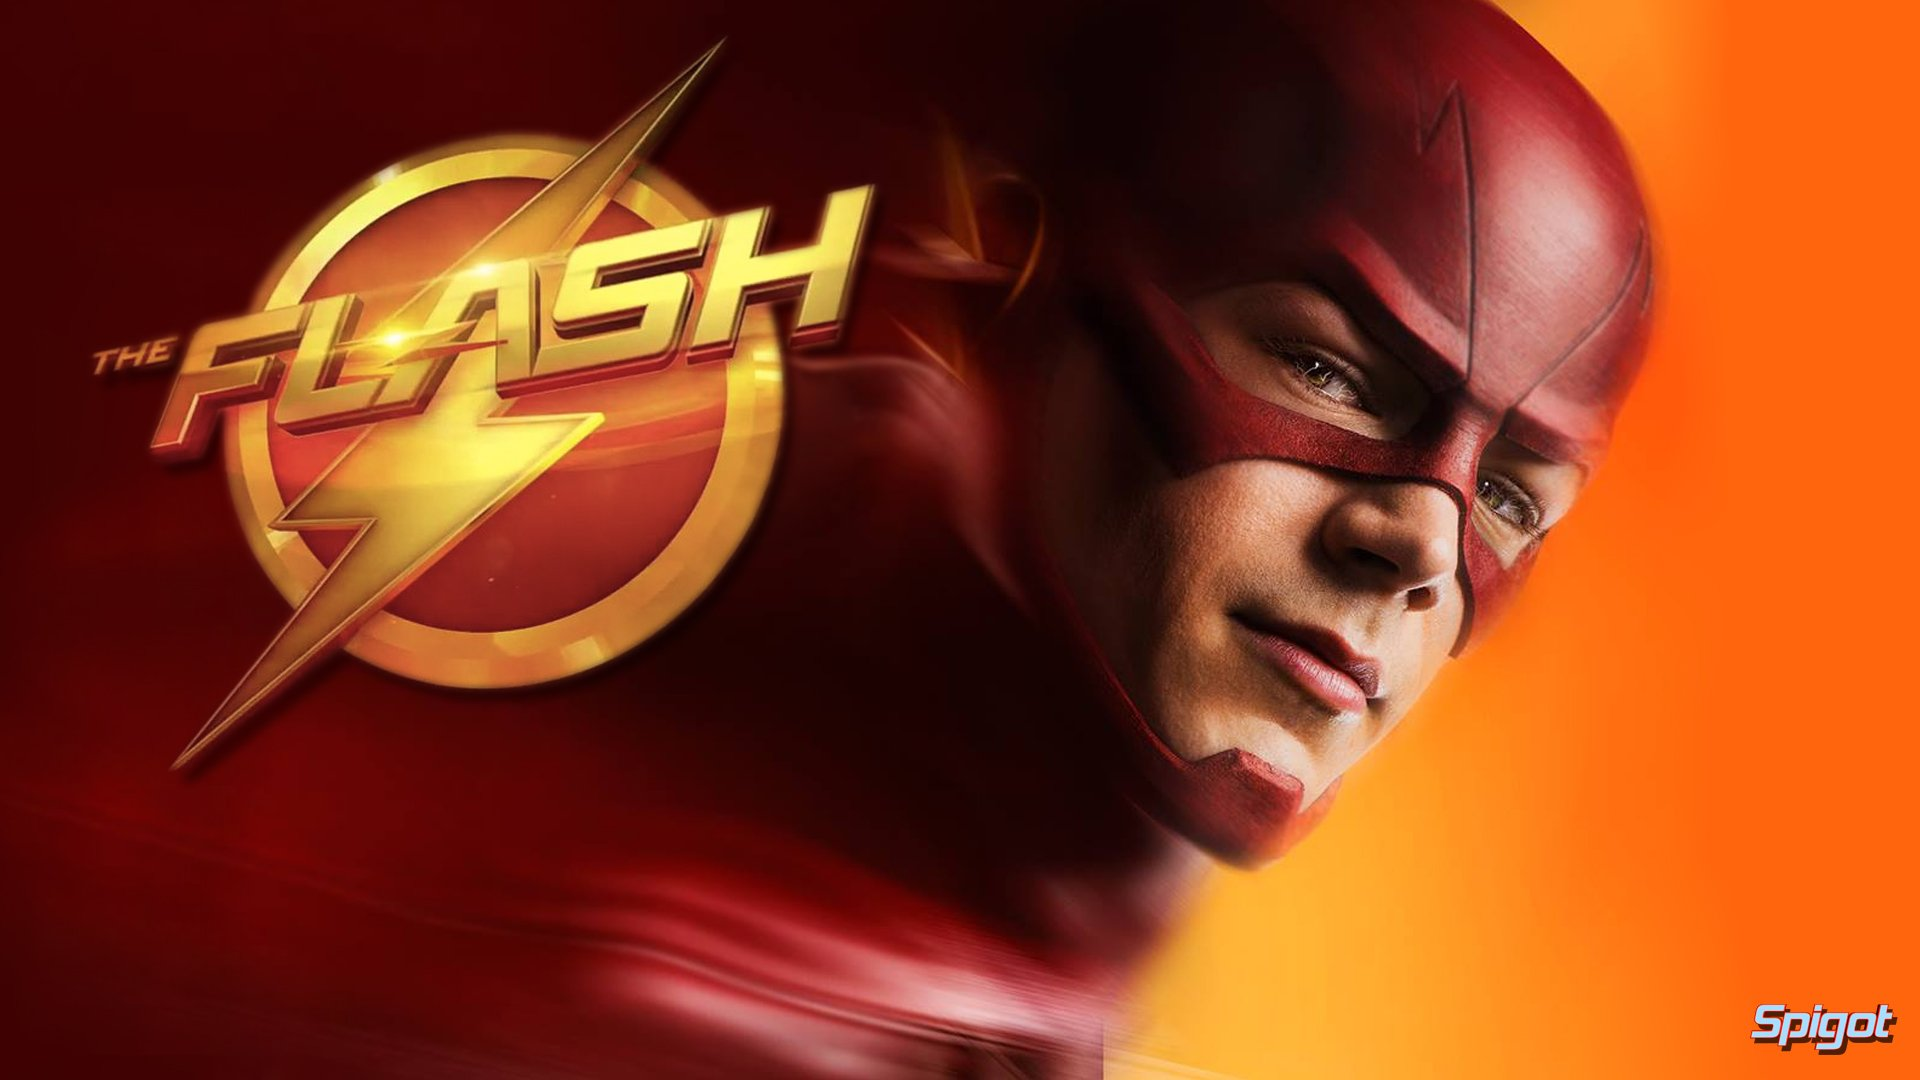 how to download the flash series